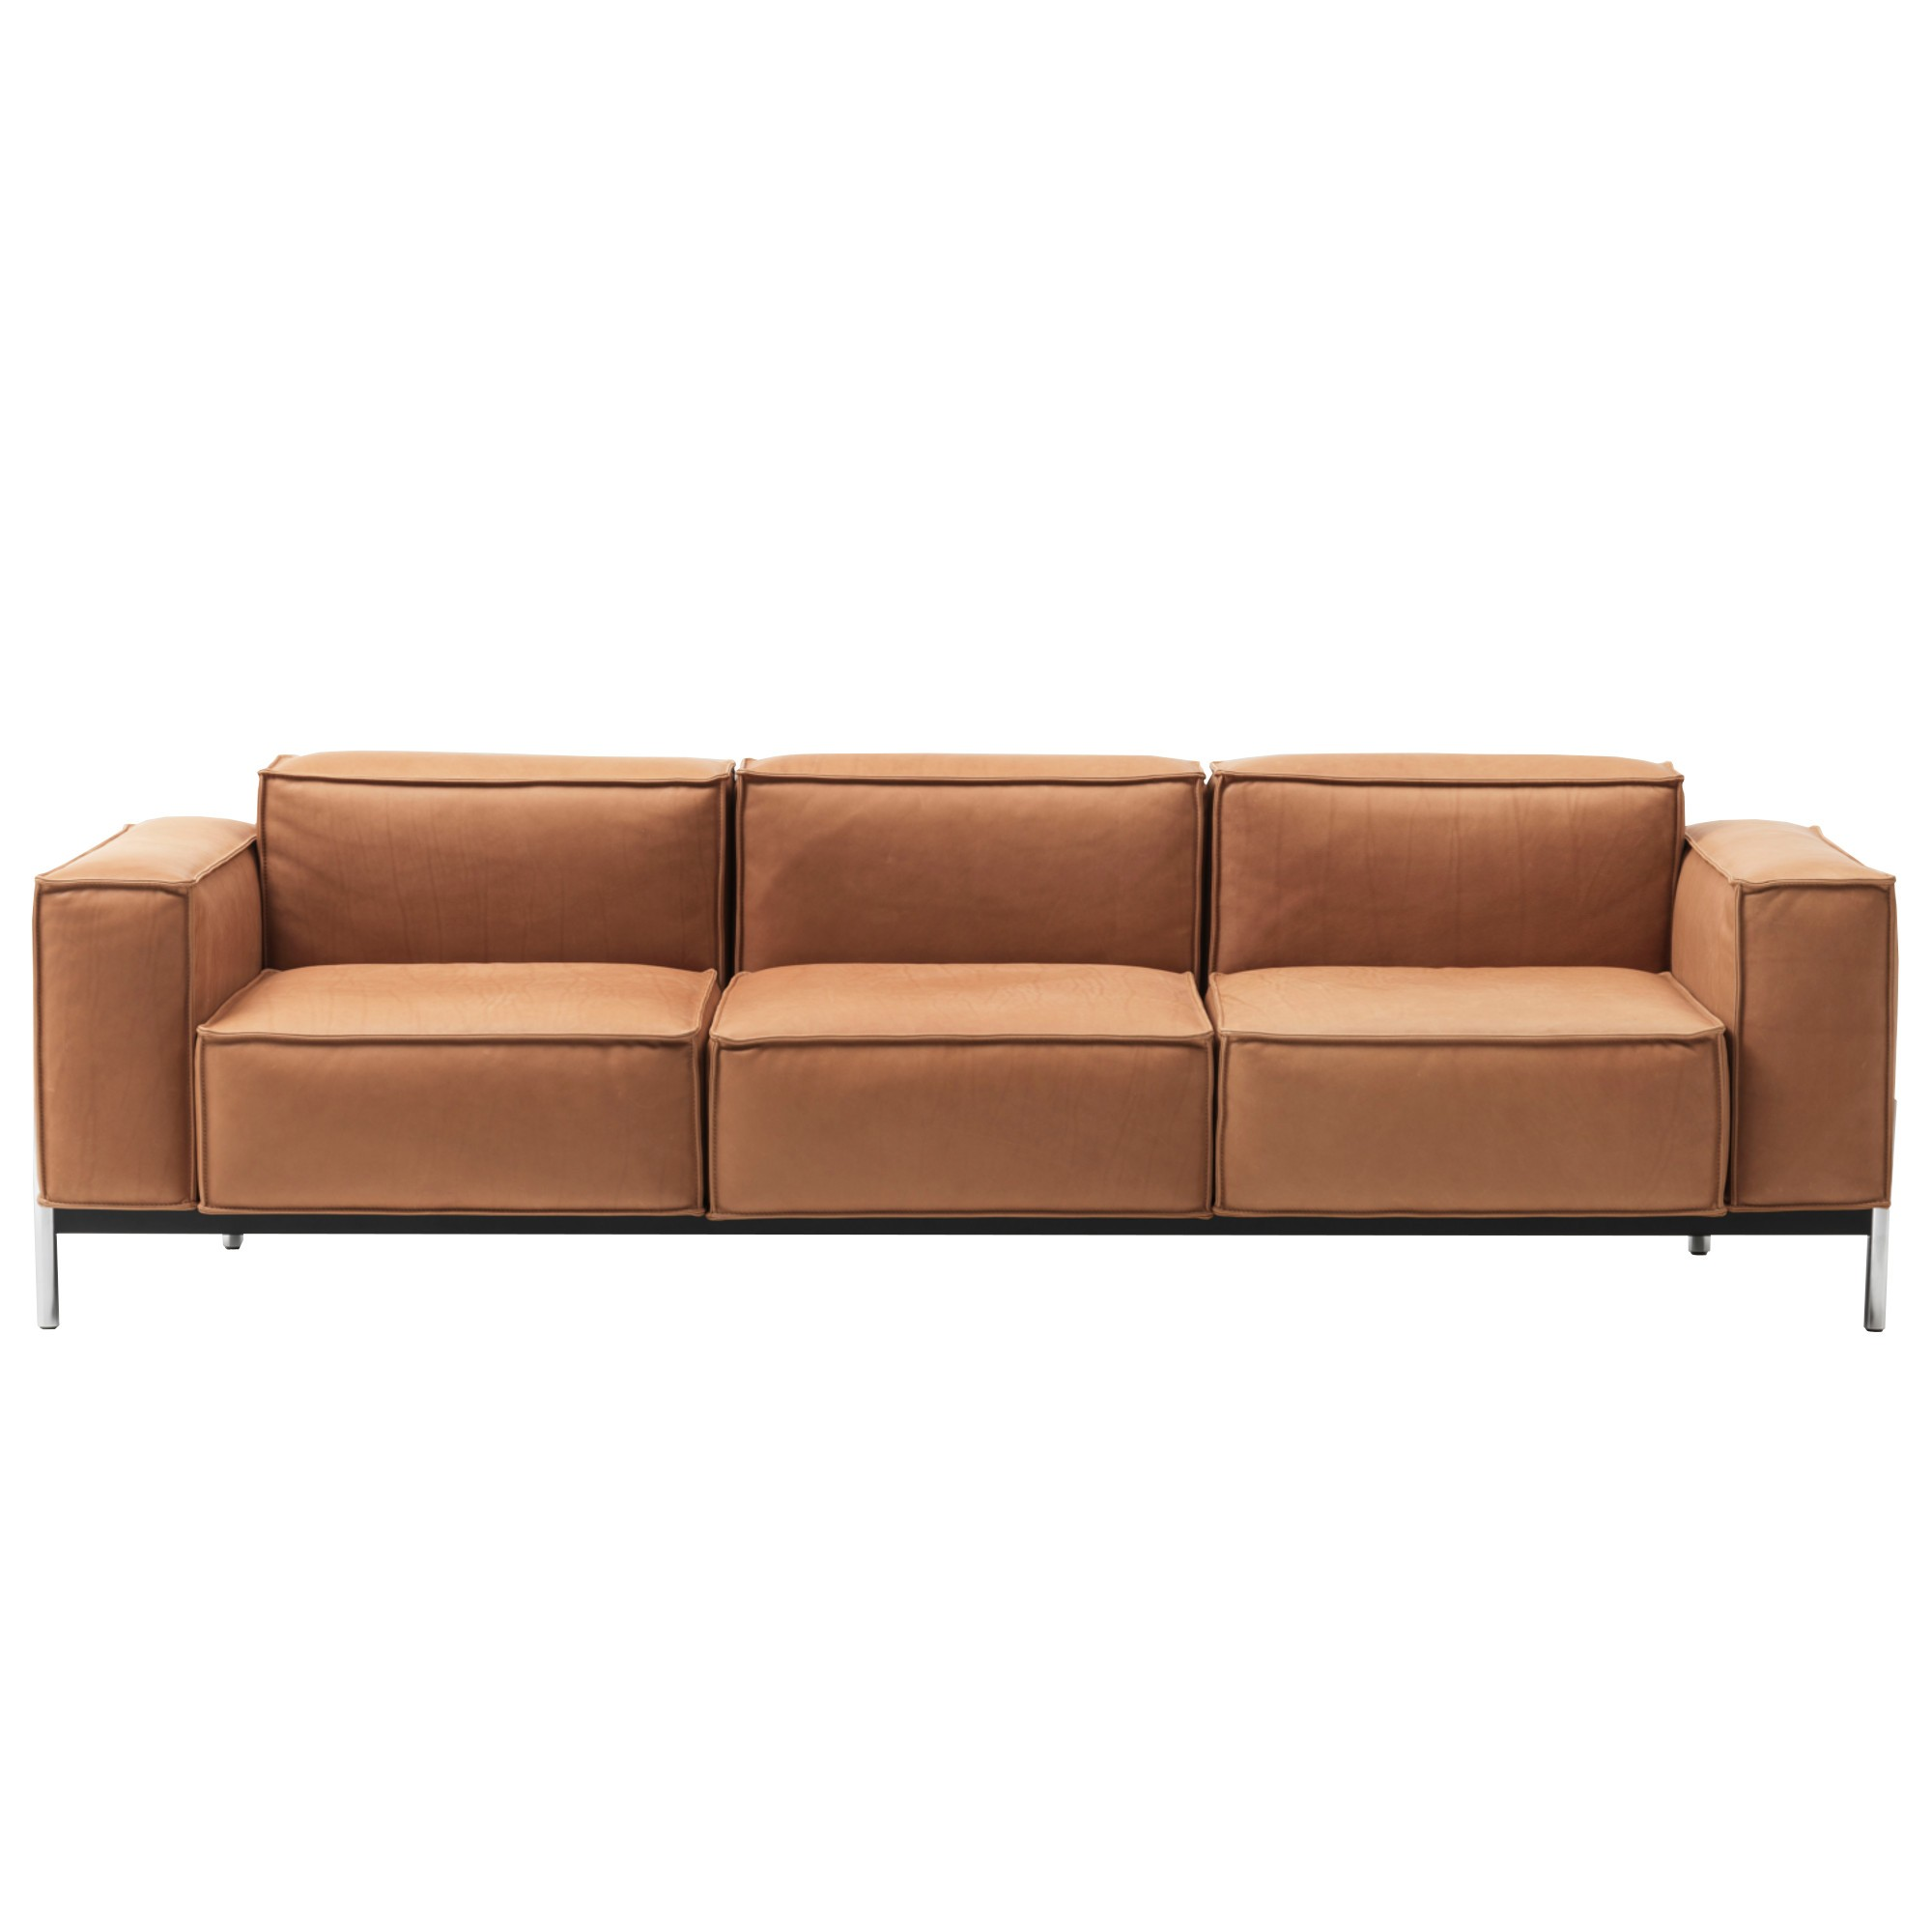 Ds 21 Sofa Linear Sofas Armchairs